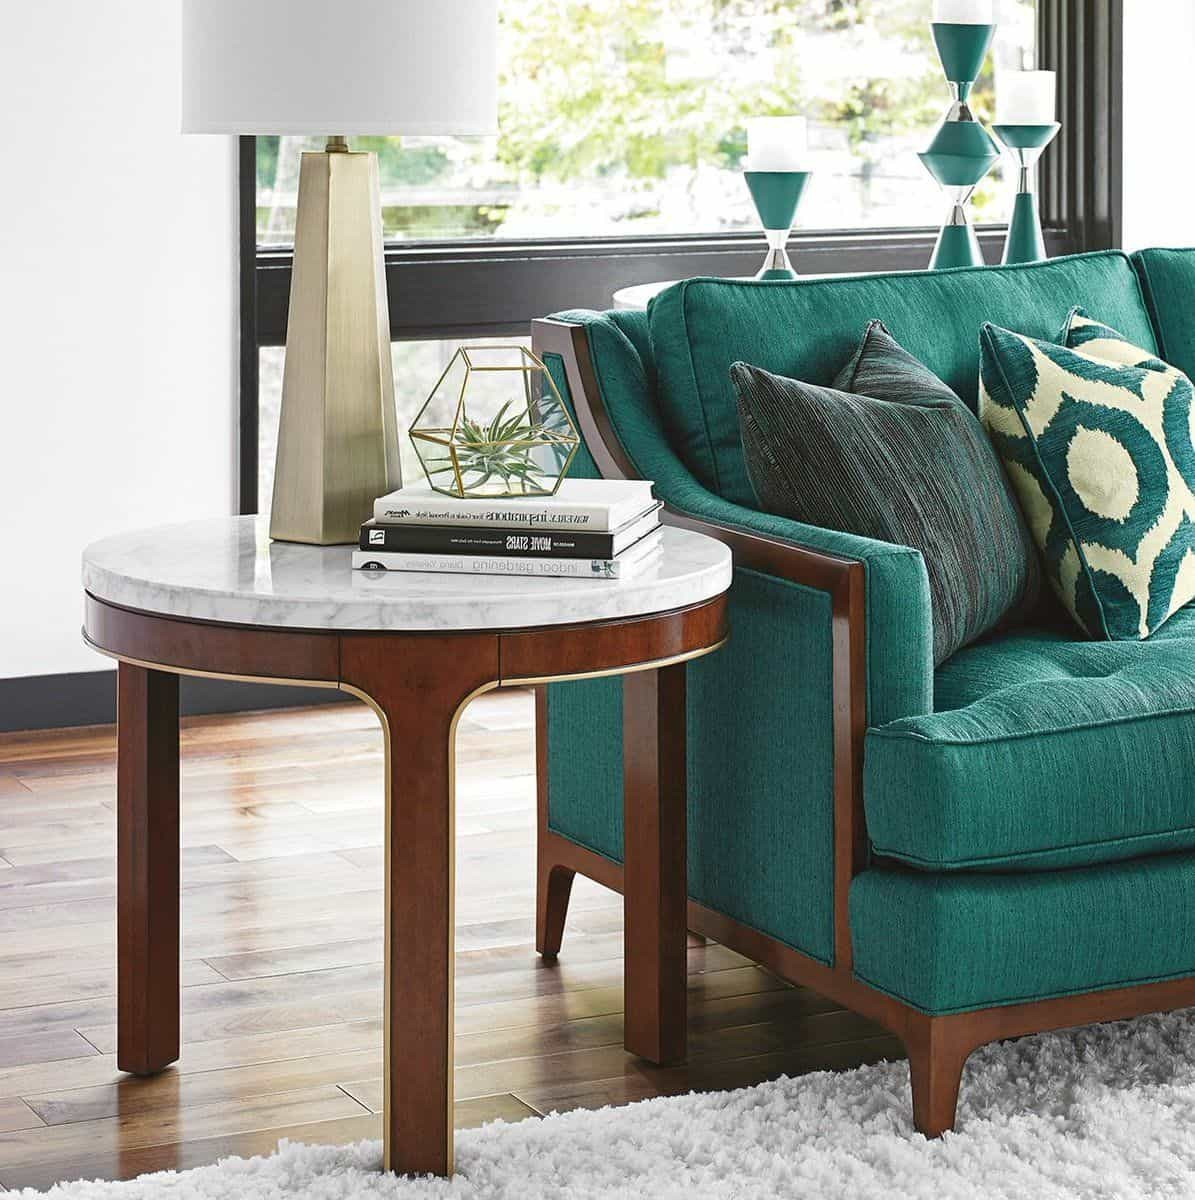 small accent table lamps decor idea plus superior end tables living room with tosca sofa and round for sleigh all wood ollies flooring coffee centrepiece ideas skinny side glass